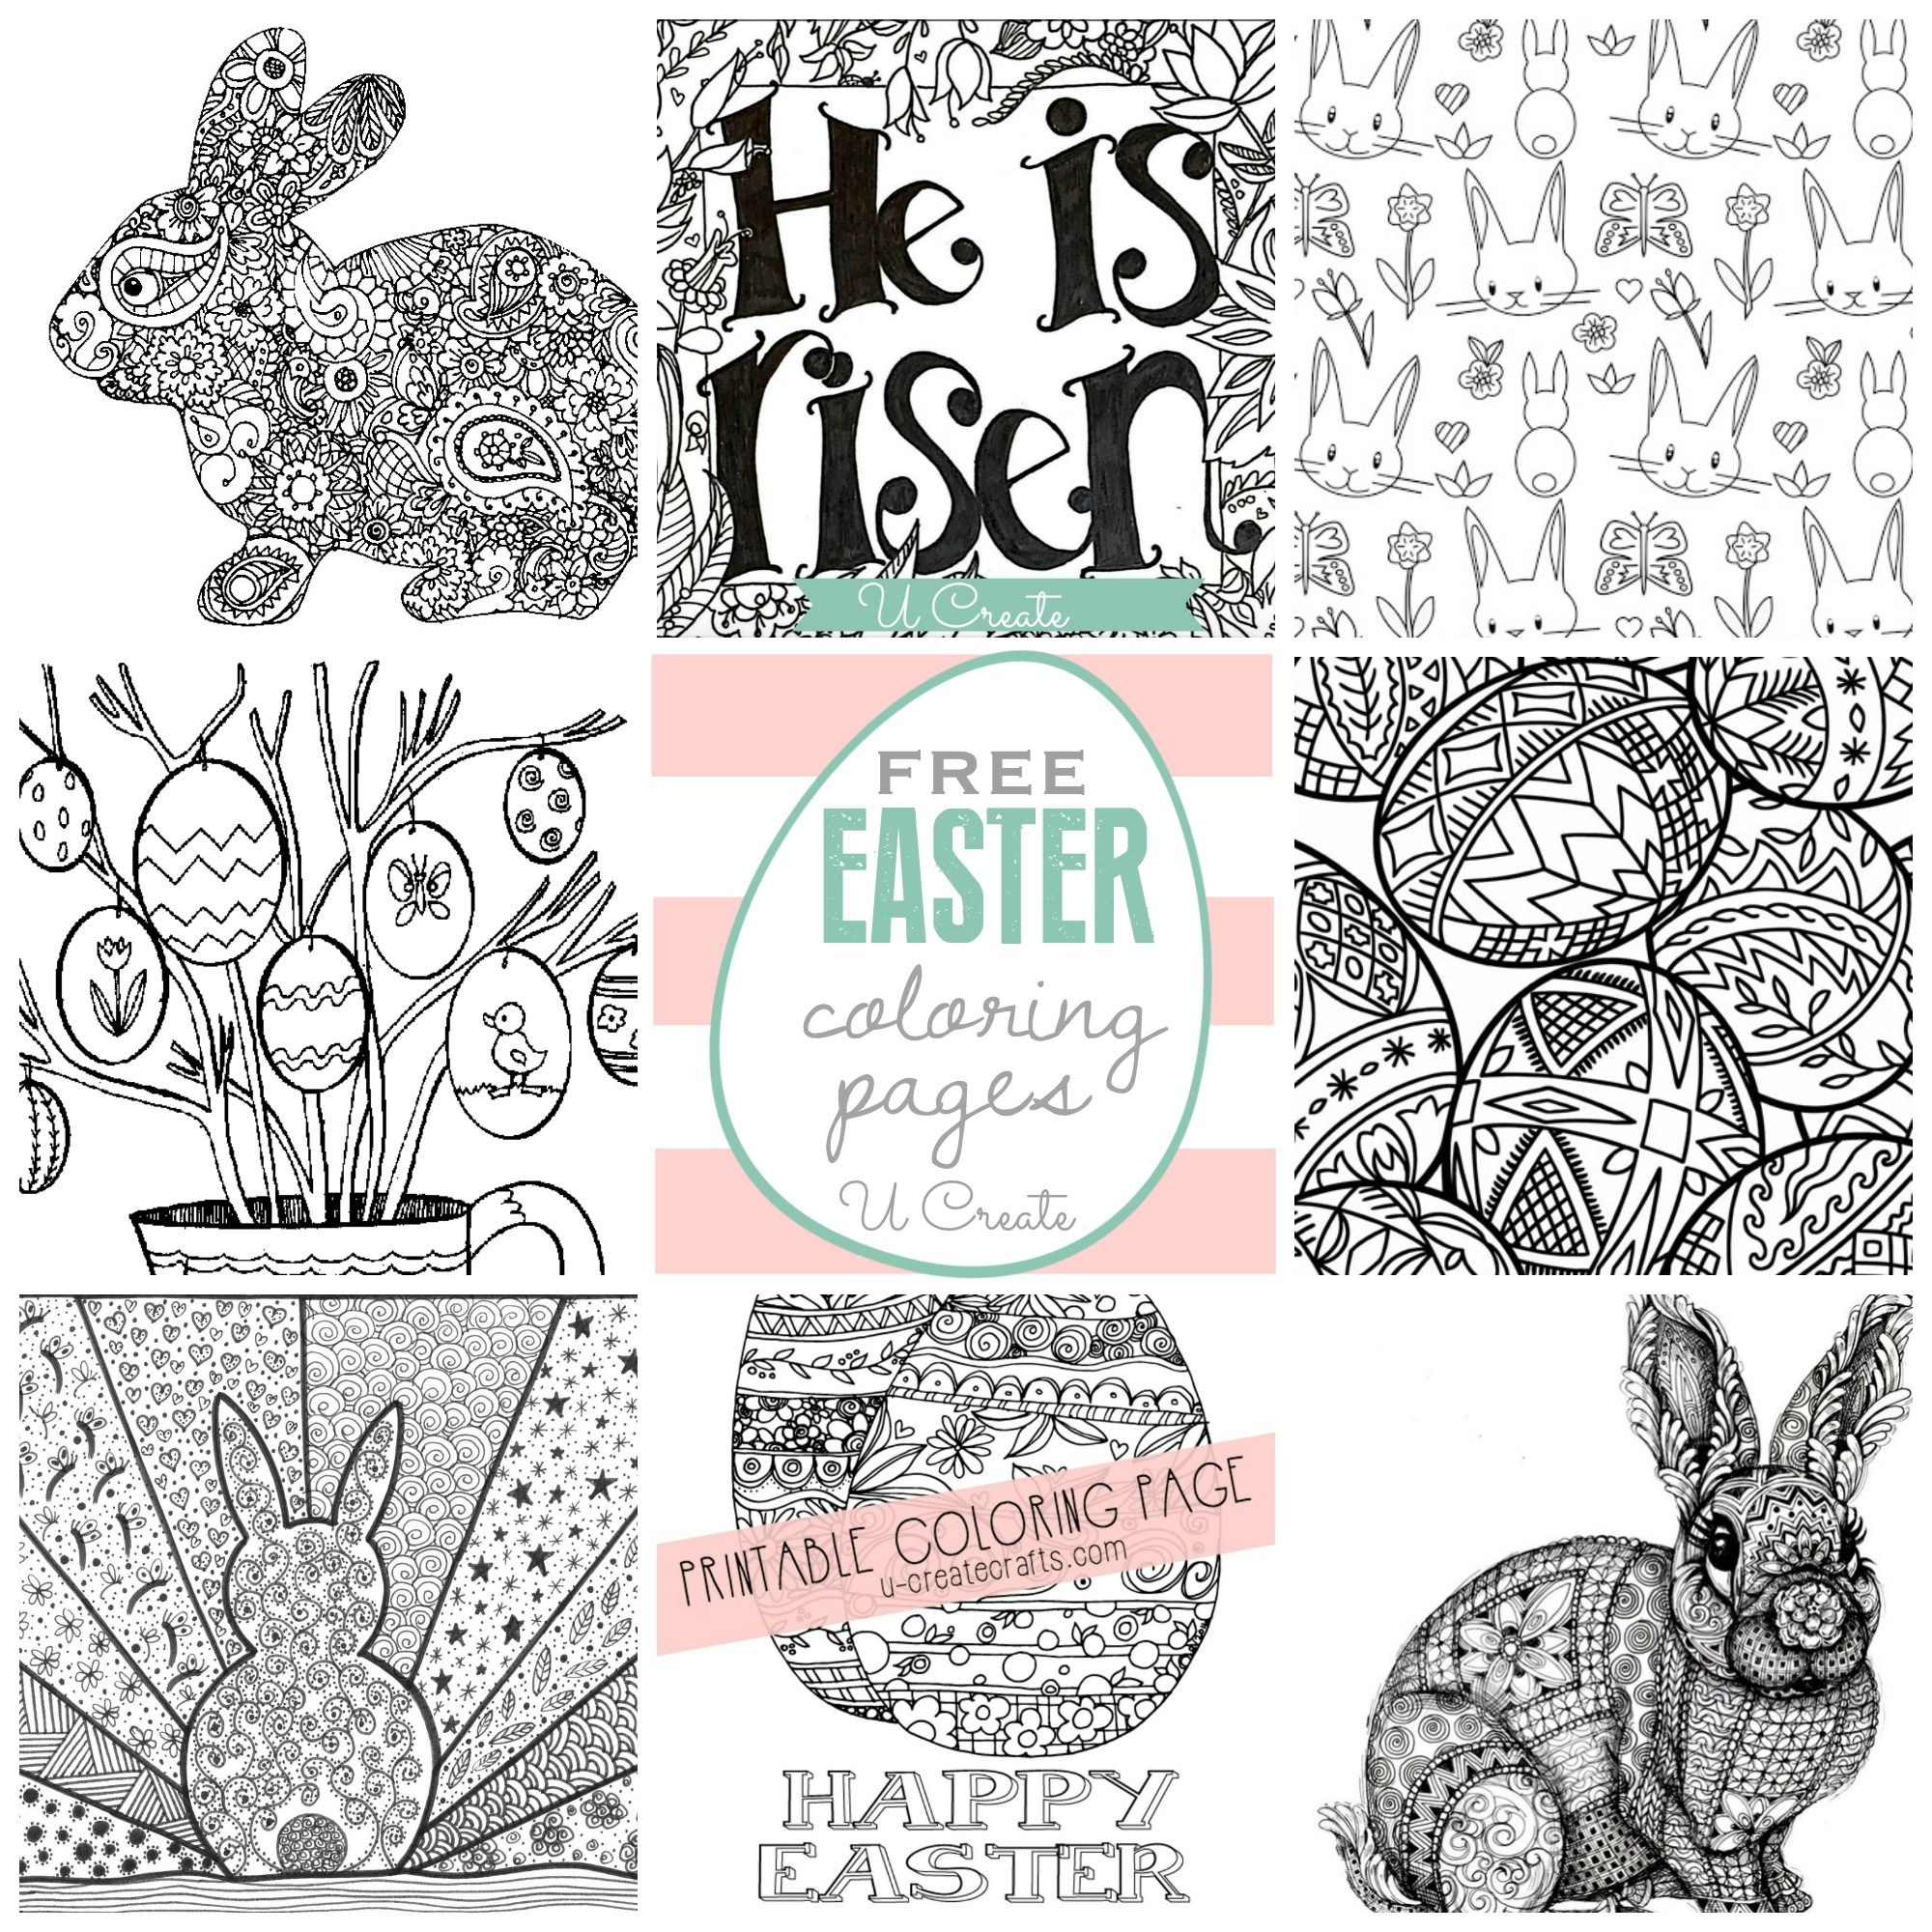 Free EASTER Coloring Pages at U Create | Easter | Pinterest